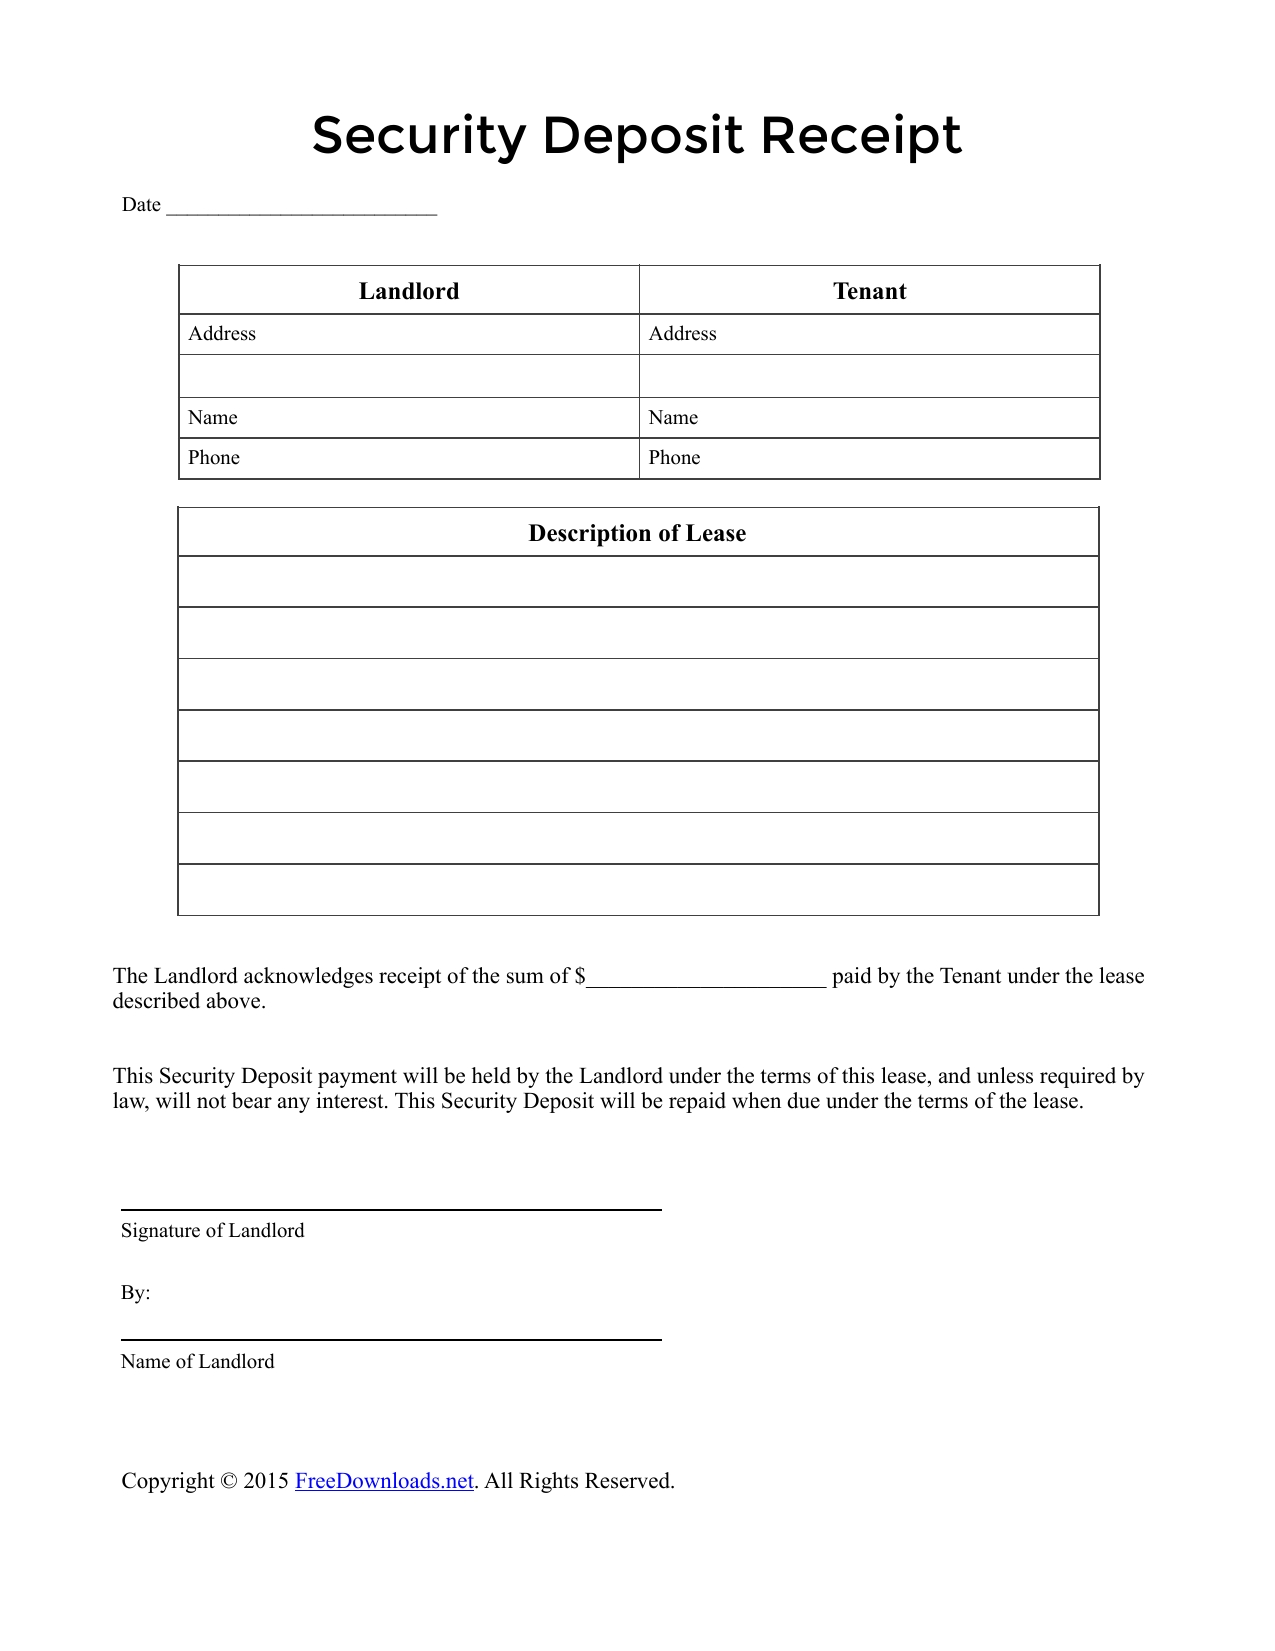 Security Deposit Receipt Template | Qualads